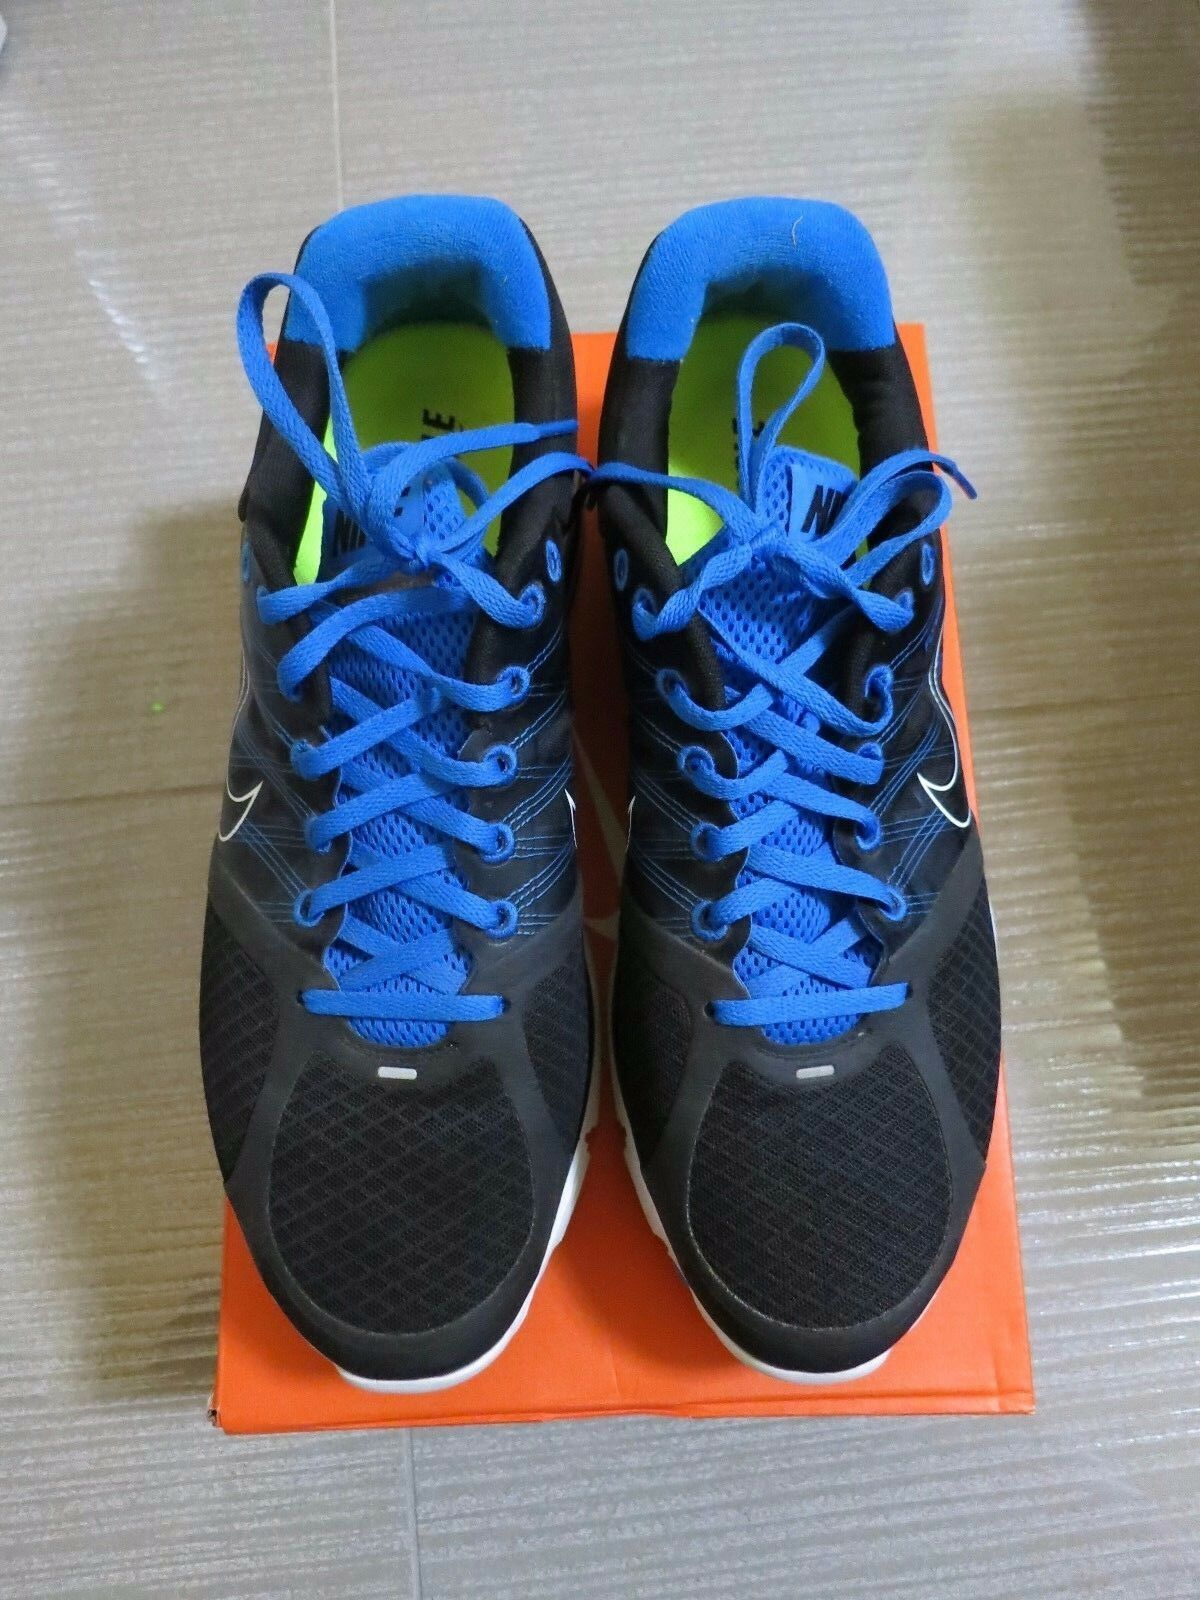 Nike Lunarglide+ 2 blueeE COLORWAY SIZE 12 VERY RARE SOLD OUT